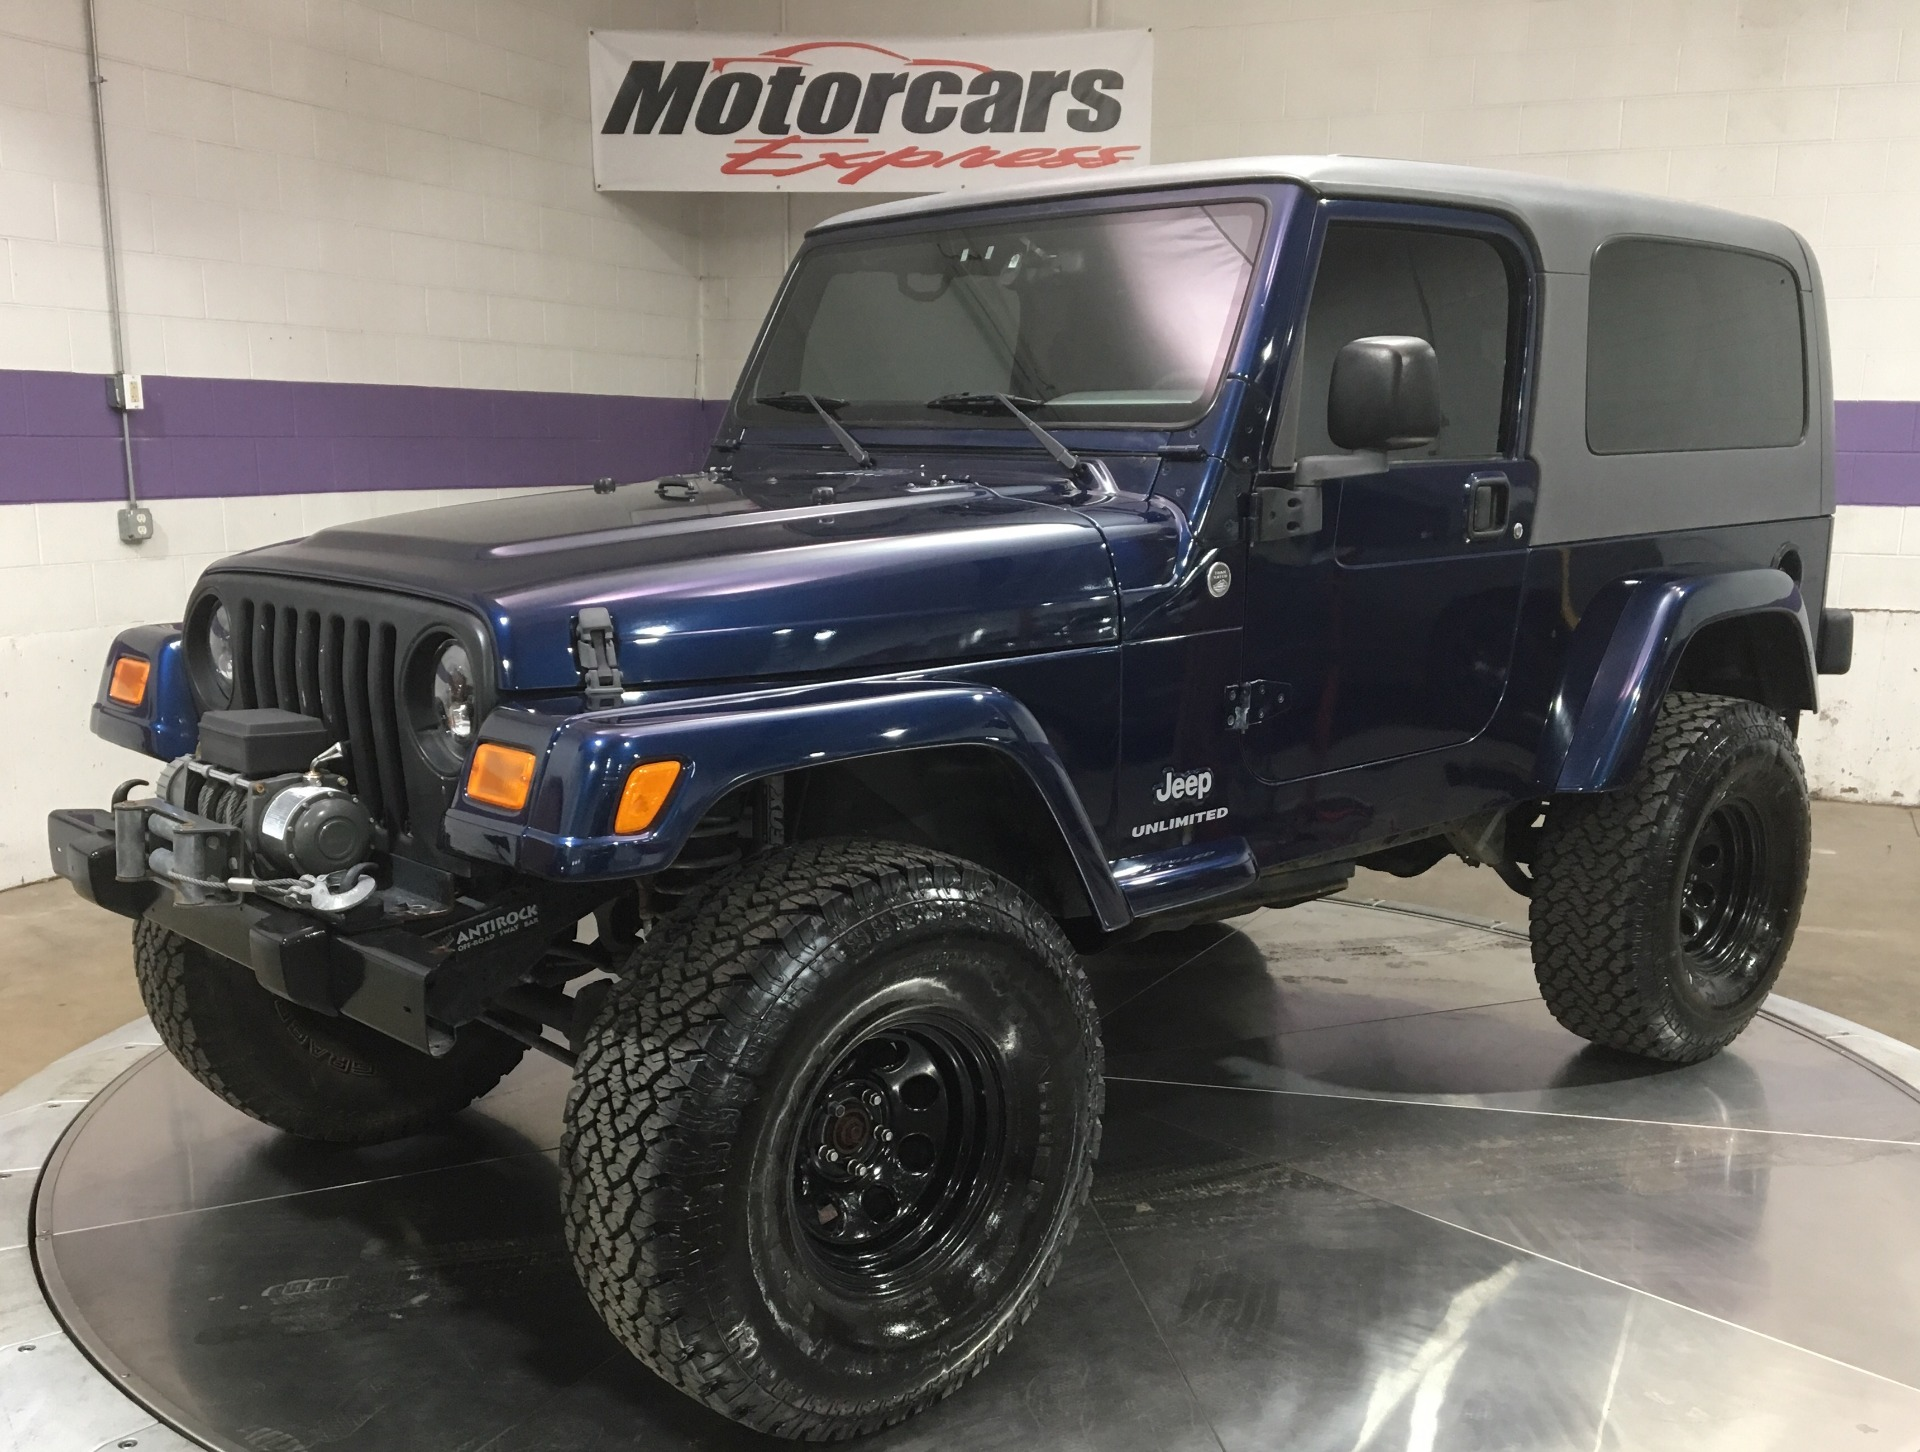 Used-2005-Jeep-Wrangler-Unlimited-4WD-2dr-SUV